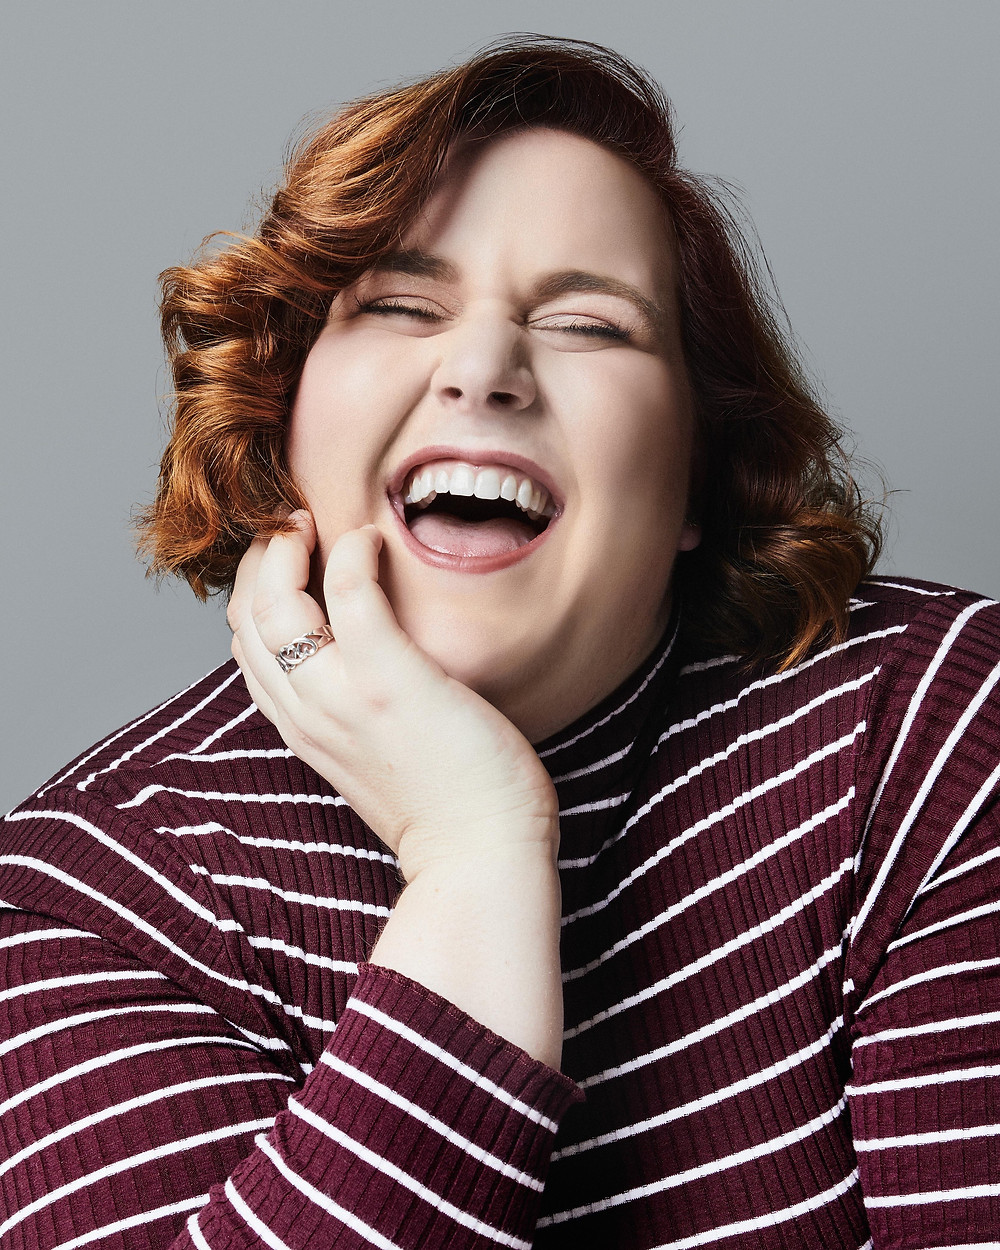 Becca Barrett, a young woman with red hair and fair skin, is wearing a maroon and white striped shirt. Her hand is touching her face, and she is laughing with a wide open smile.